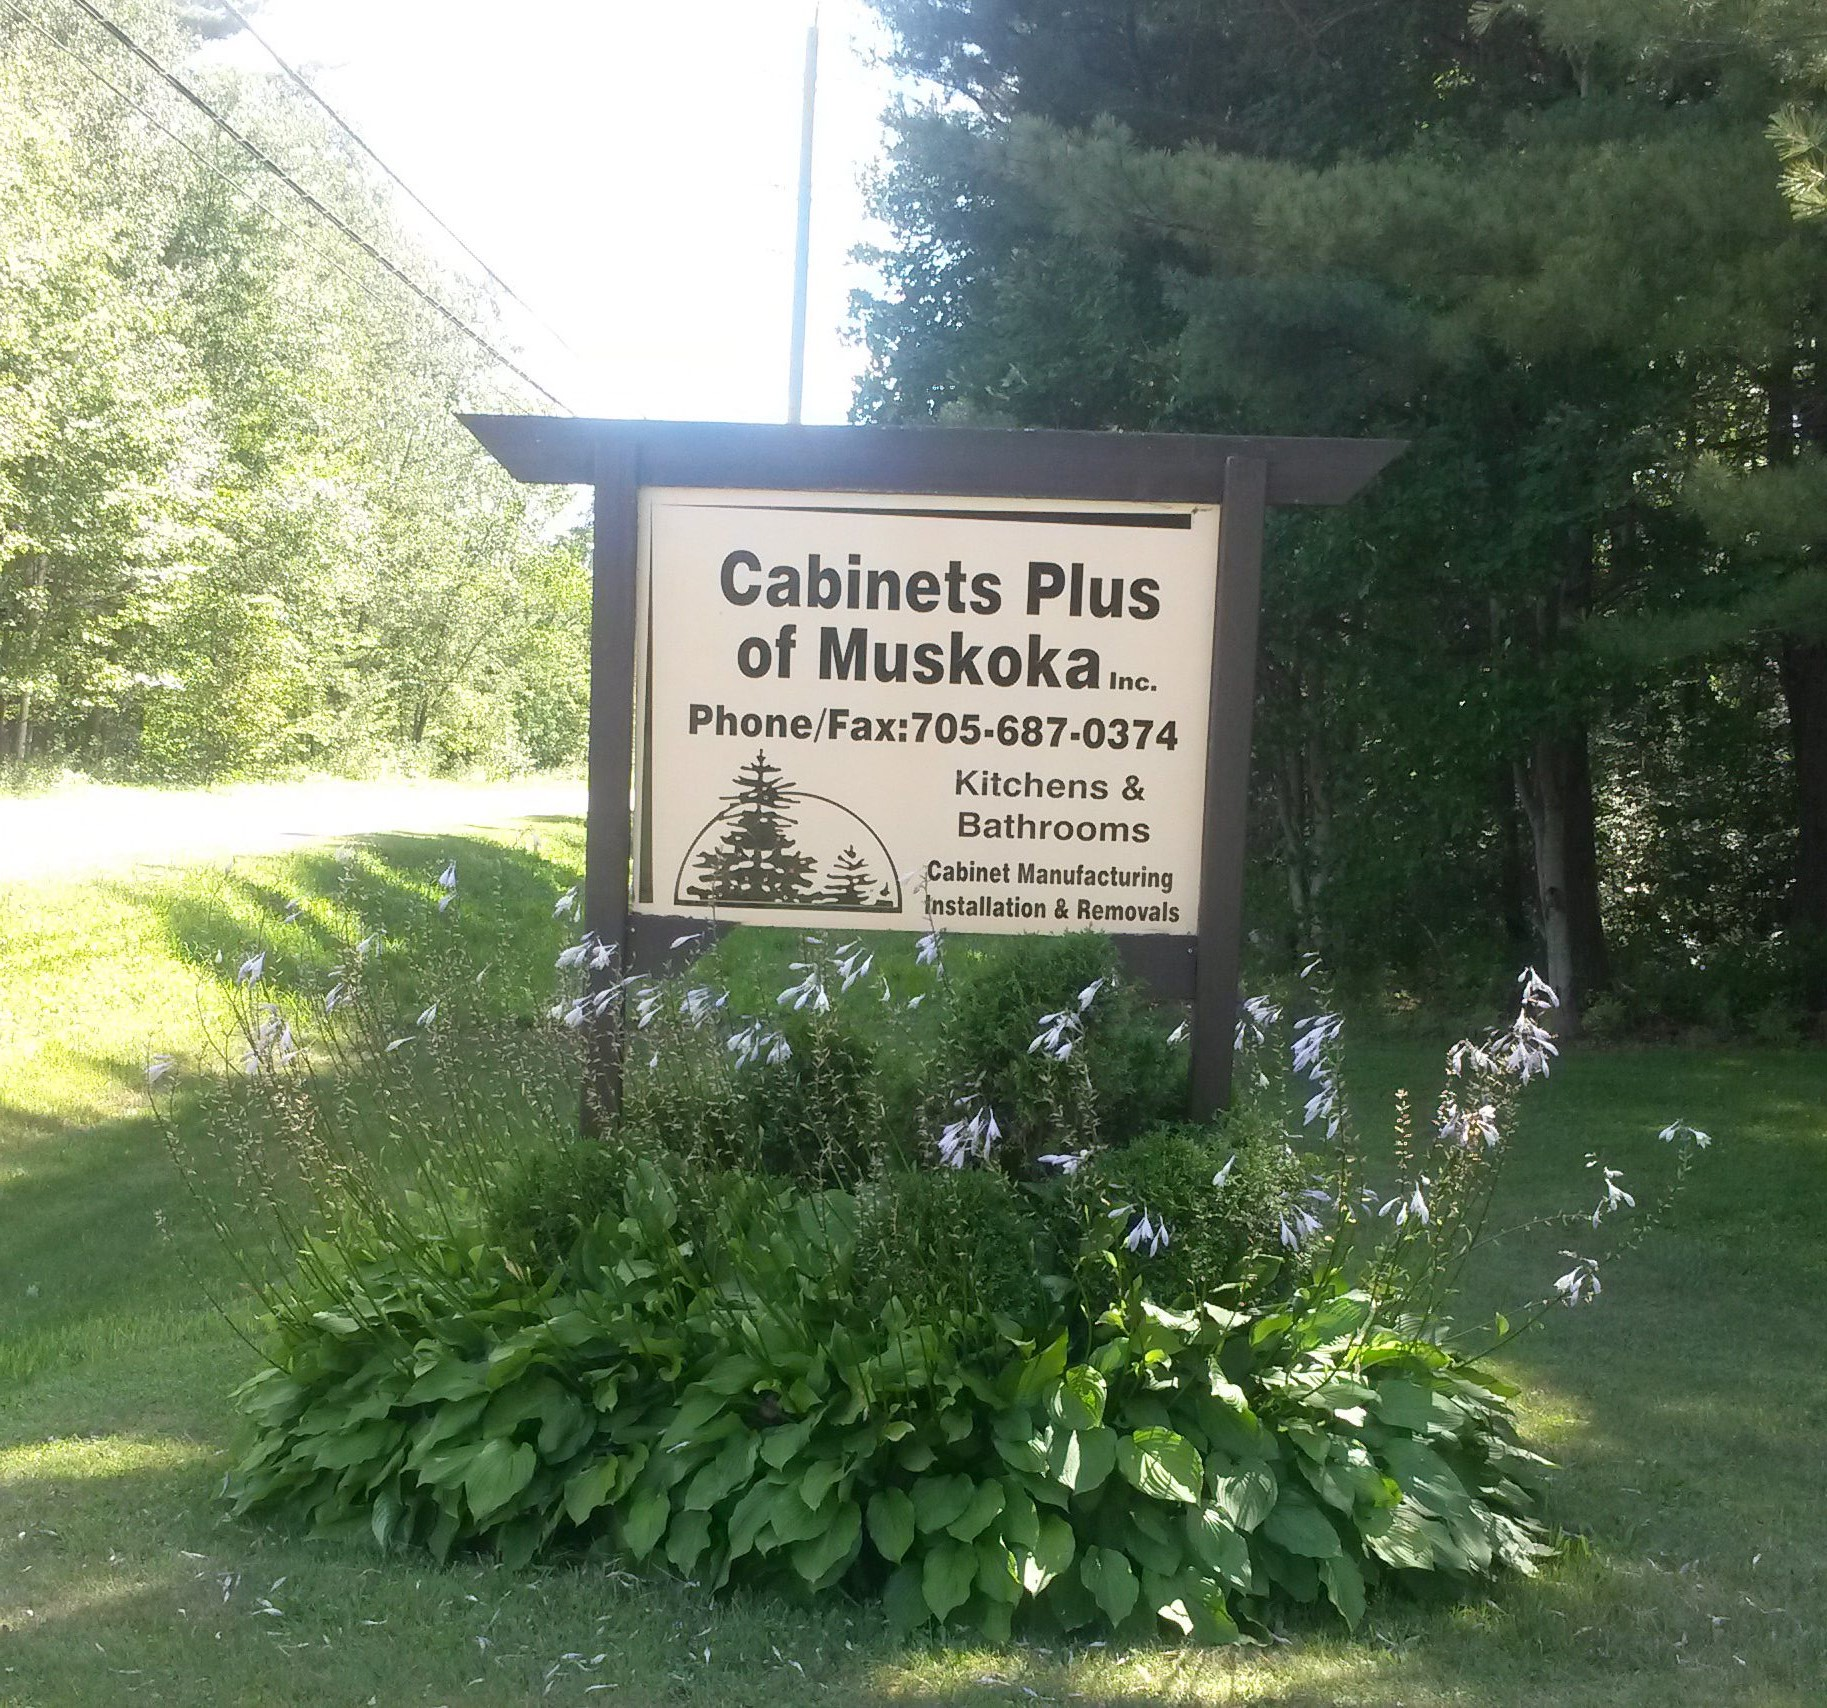 Cabinets Plus of Muskoka sign